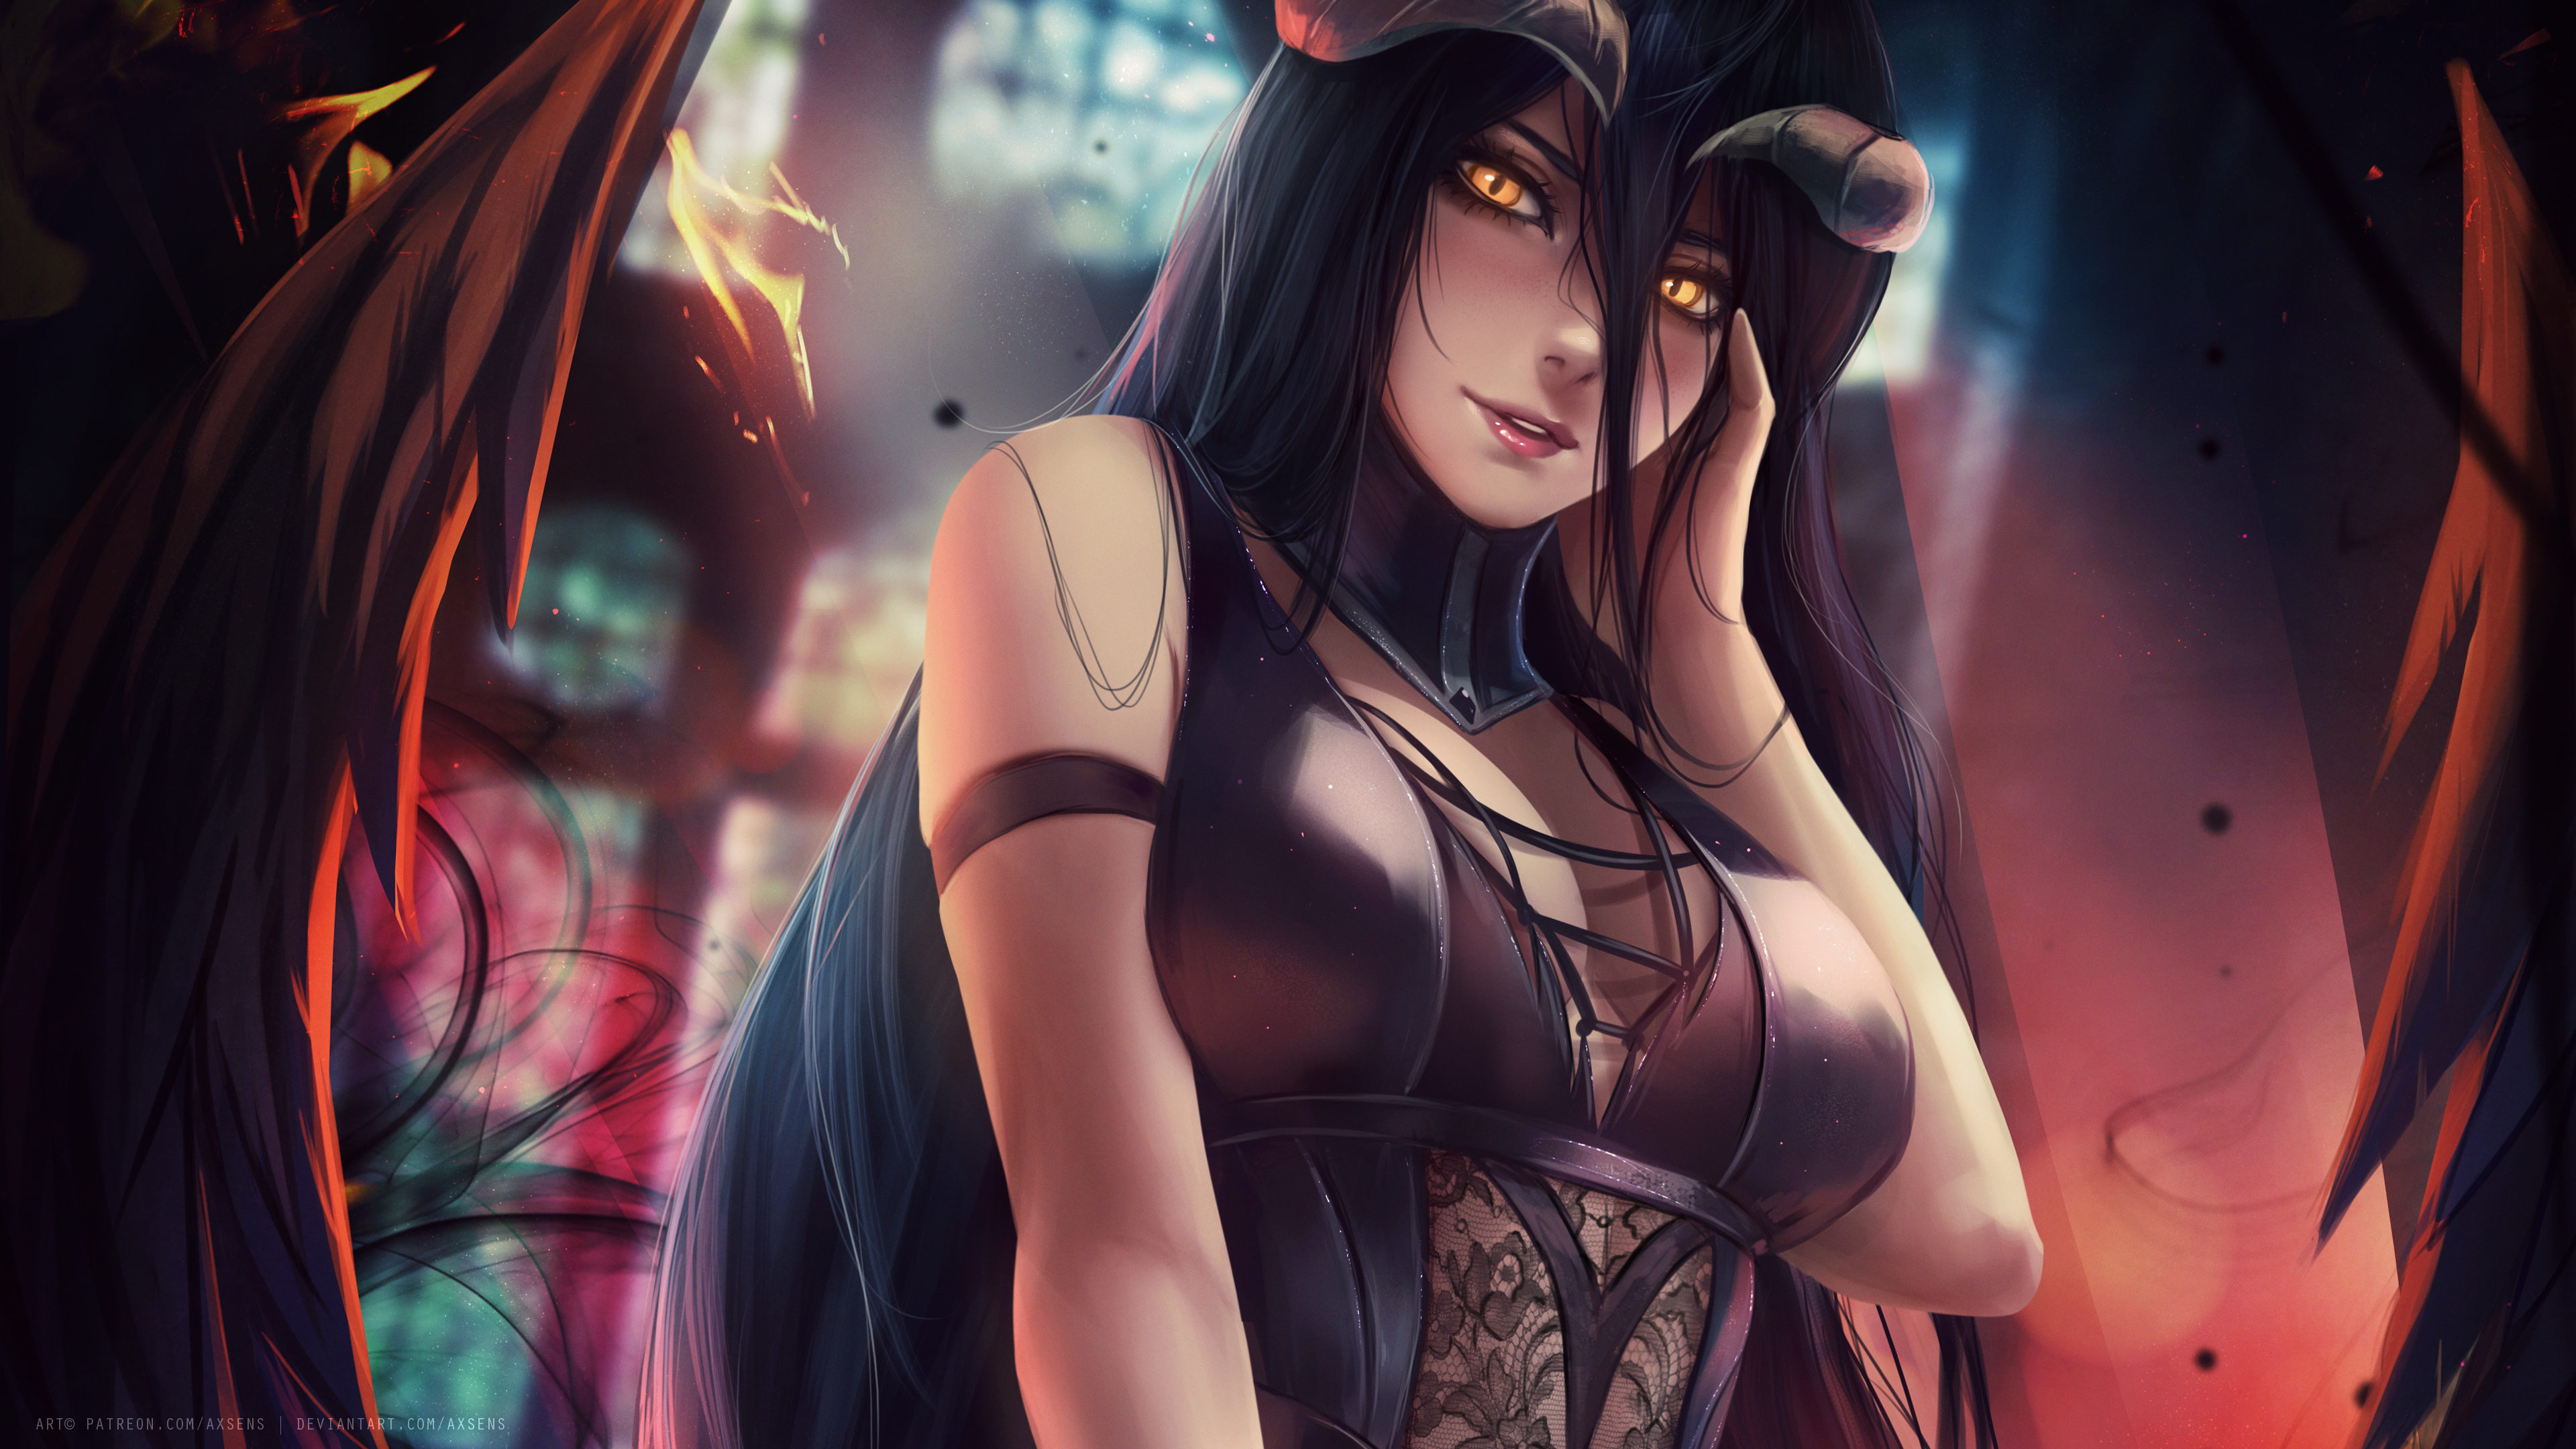 Albedo From Overlord Ps4wallpapers Com